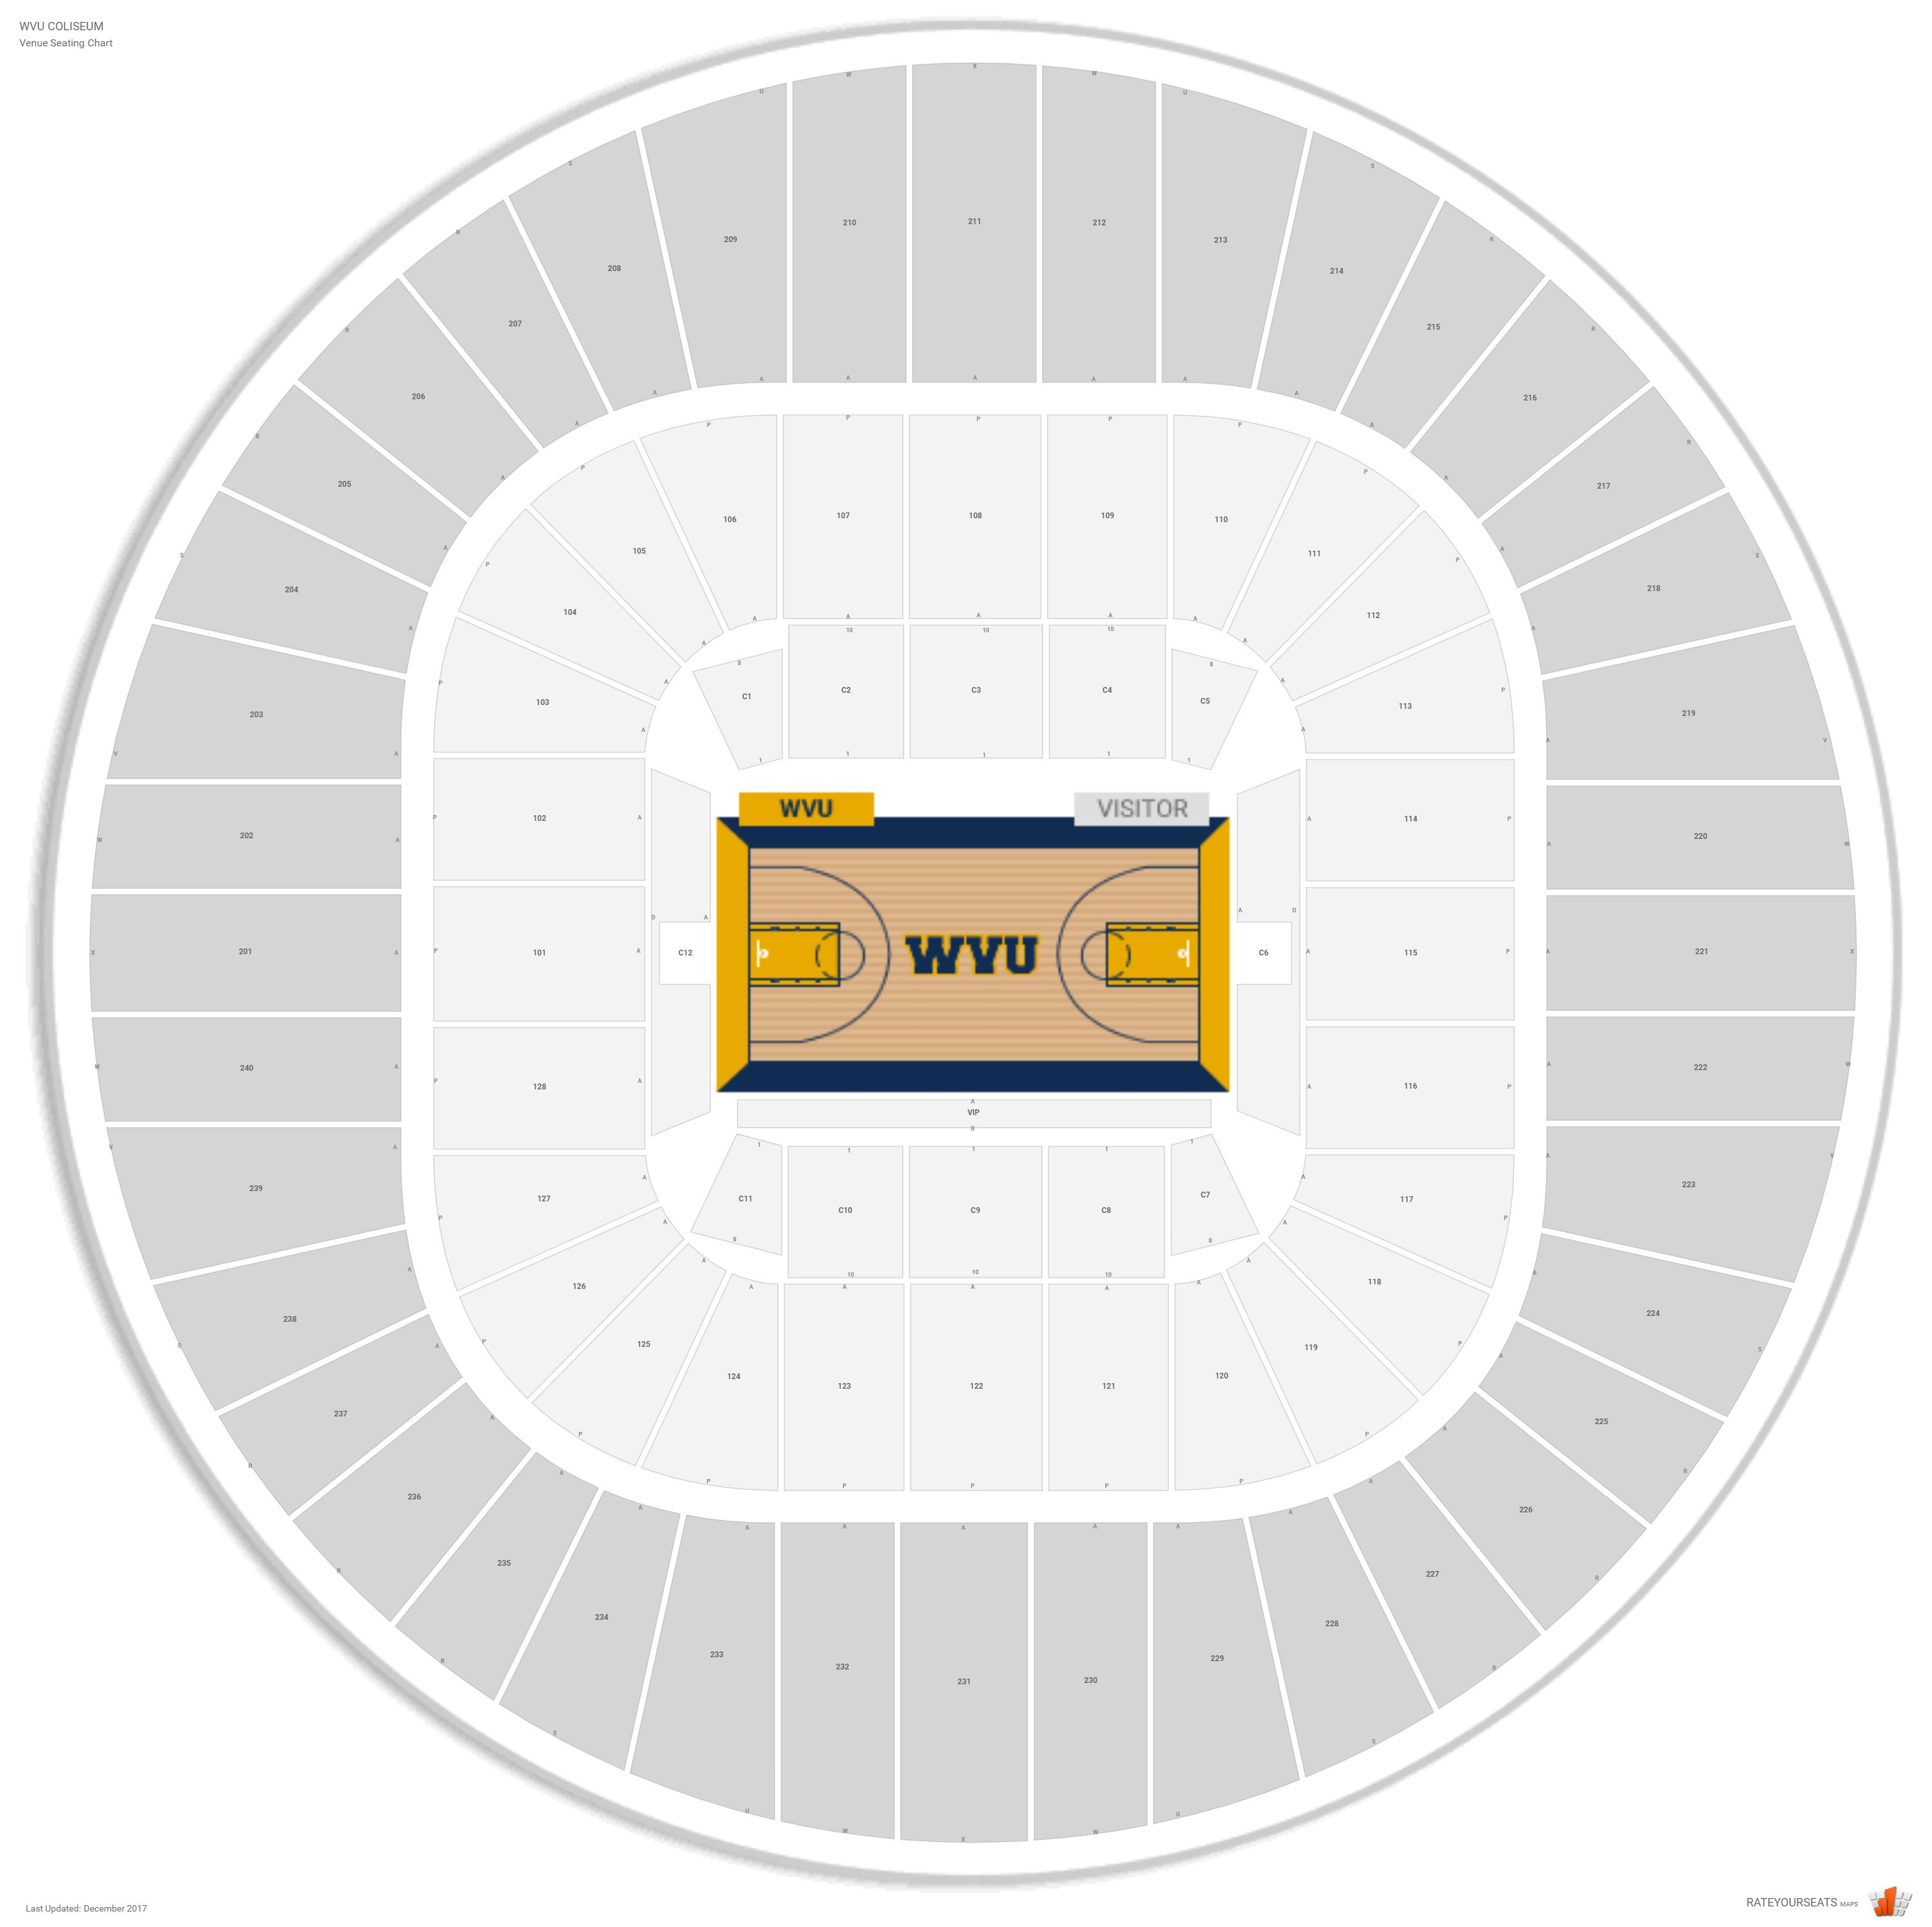 Wvu coliseum west virginia seating guide rateyourseats com